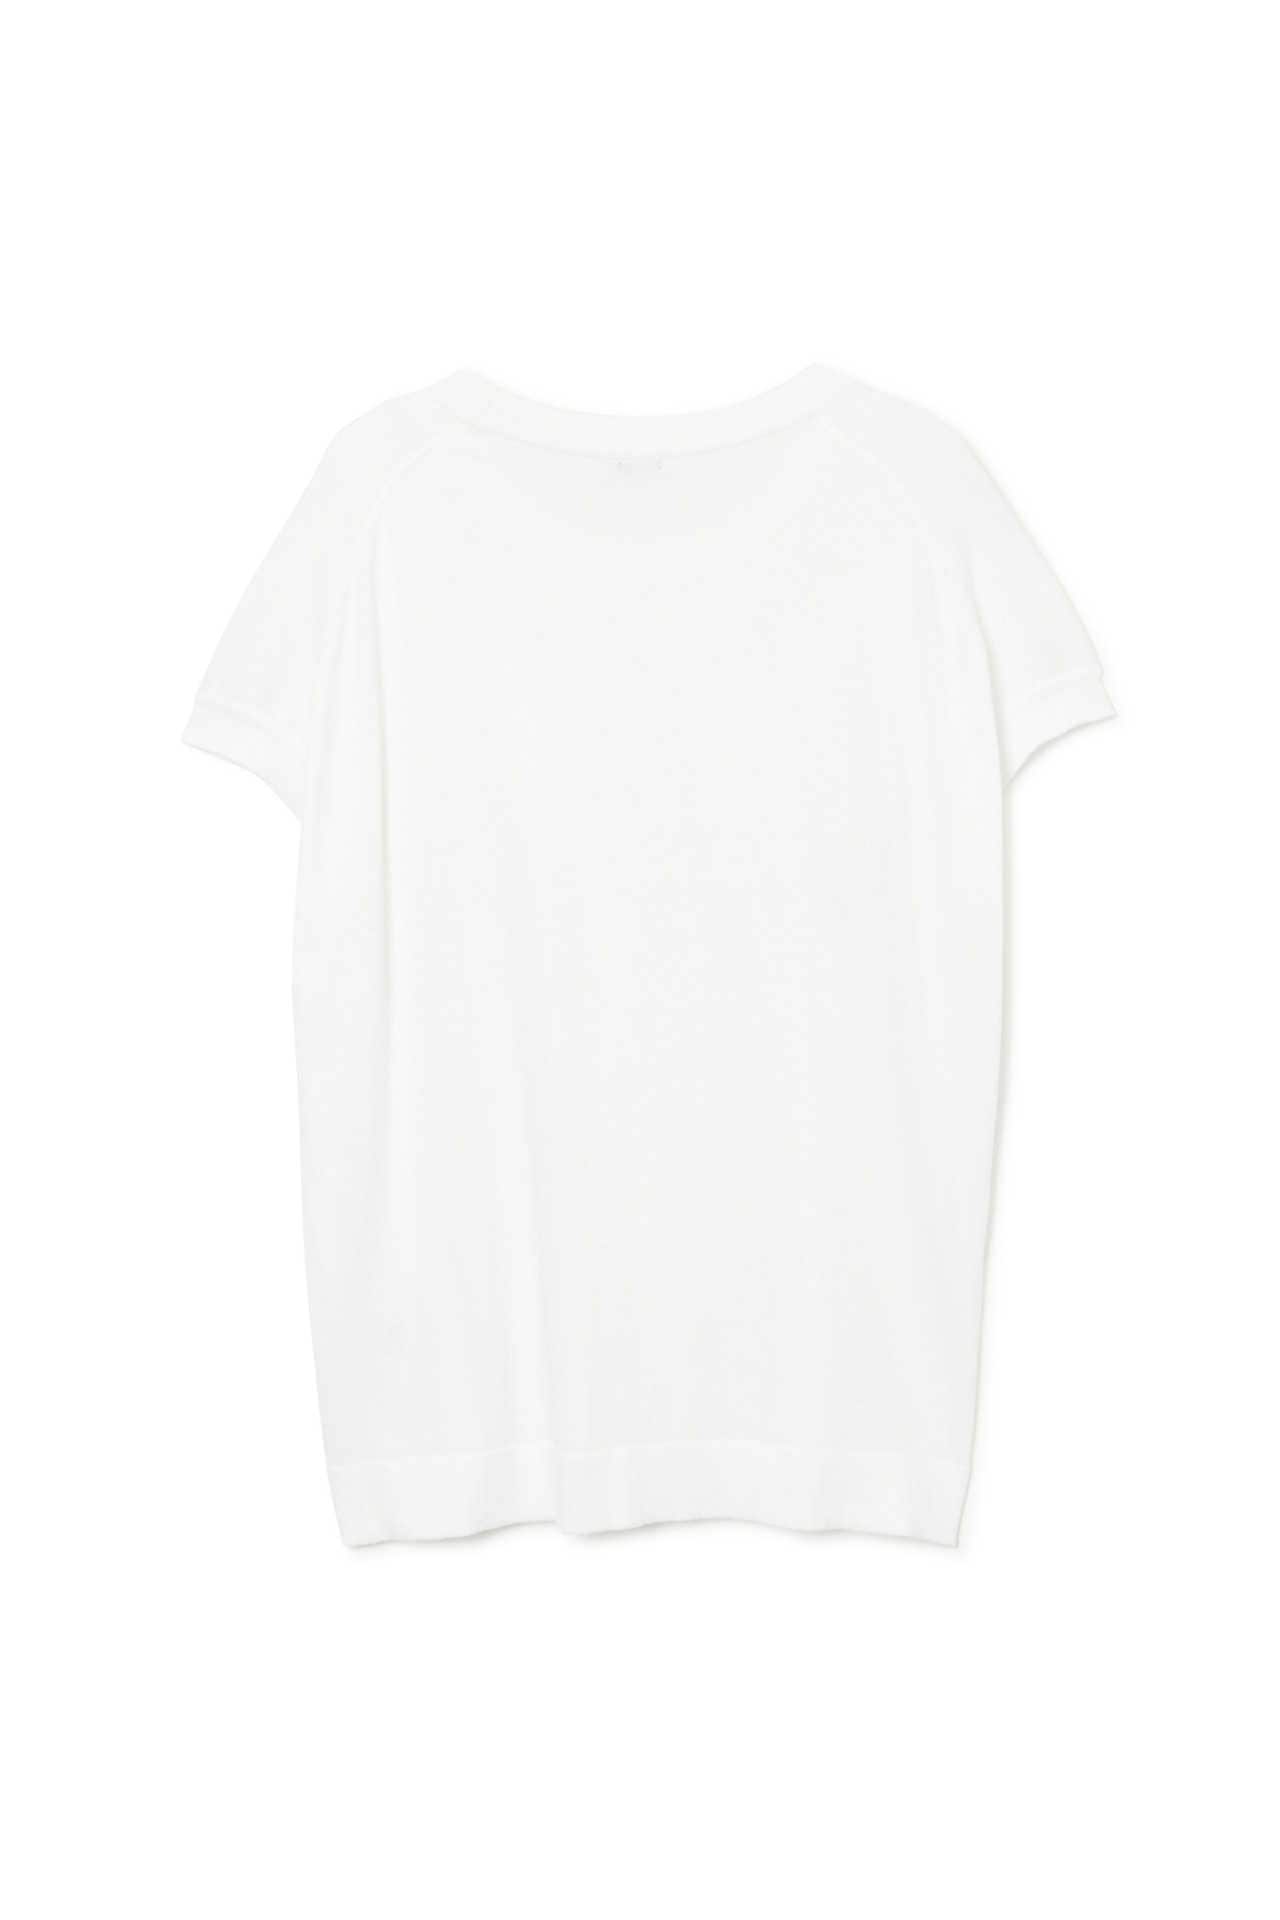 SEA ISLAND COTTON SLIPOVER